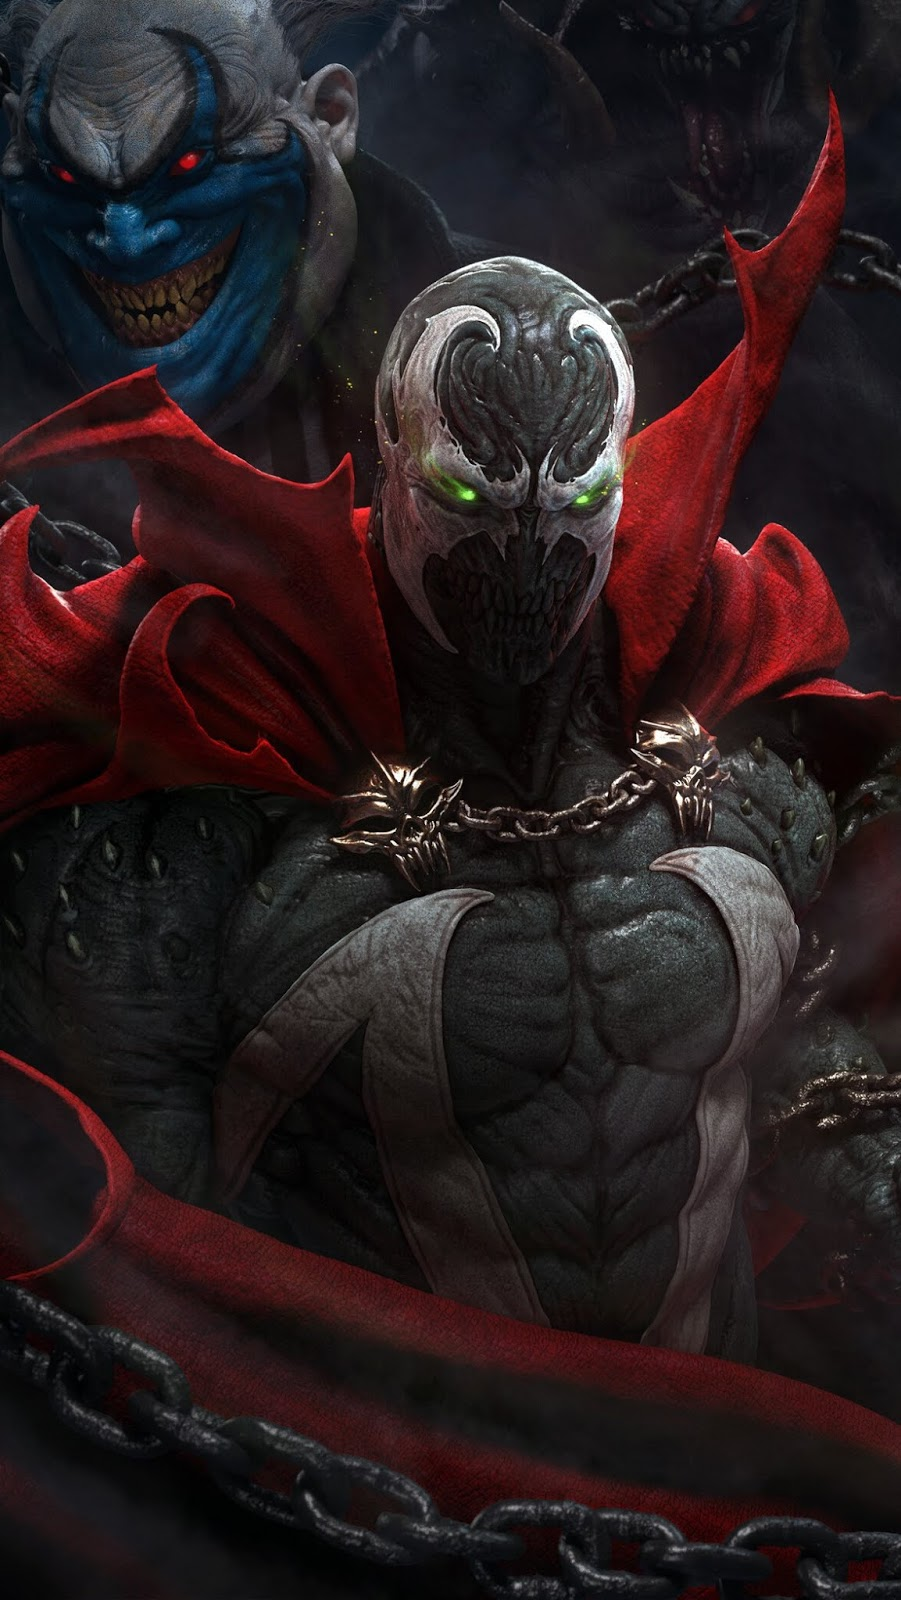 Spawn art to use as phone wallpaper. Spawn is a fictional superhero appearing in a monthly comic book of the same name published by American company Image Comics